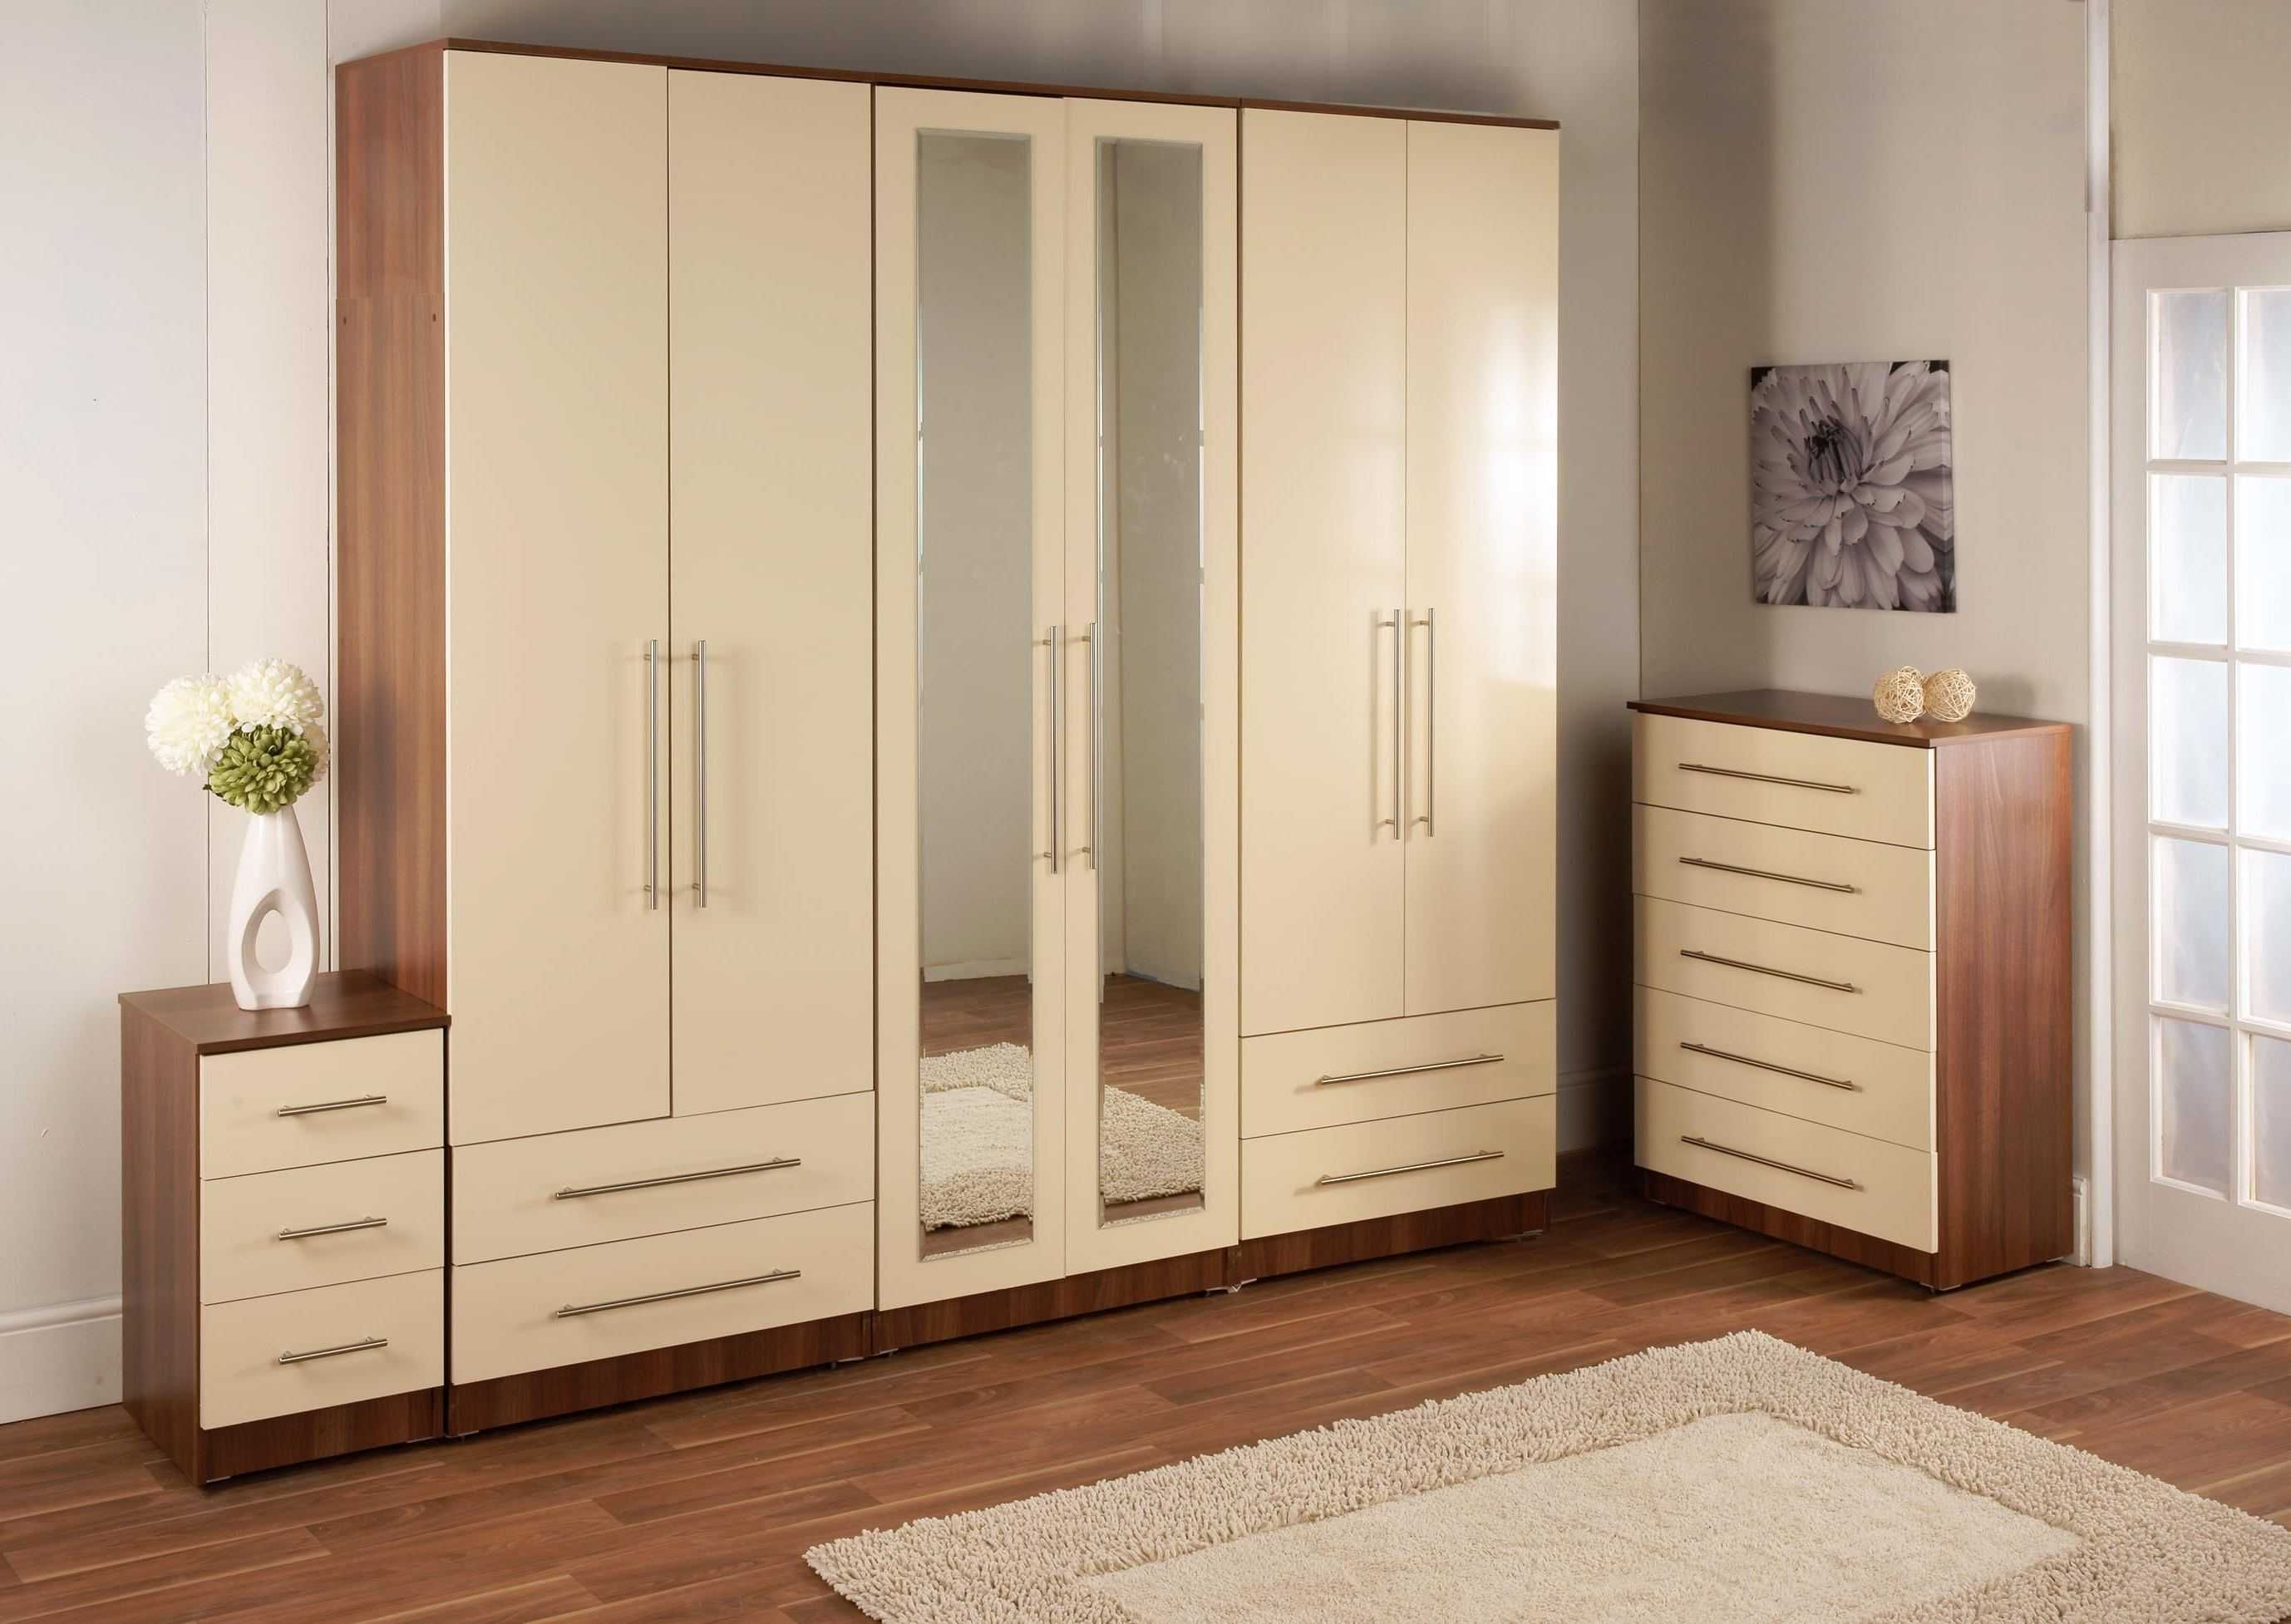 luxury wardrobe designs for master bedroom indian | wardrobe